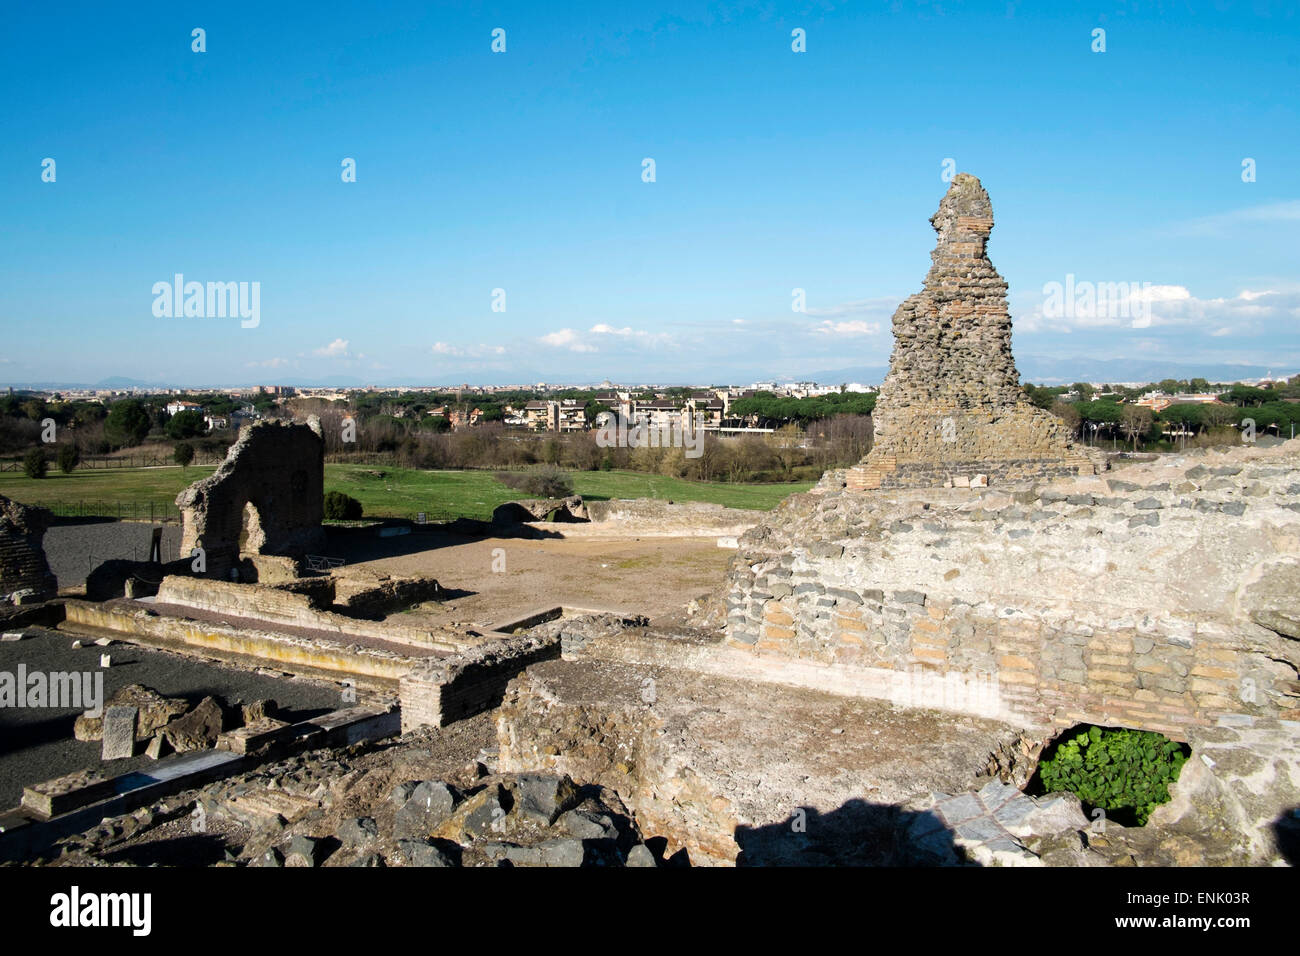 Vew of Rome from the Quintili's villa built in the 2nd century BC, Rome, Lazio, Italy, Europe - Stock Image